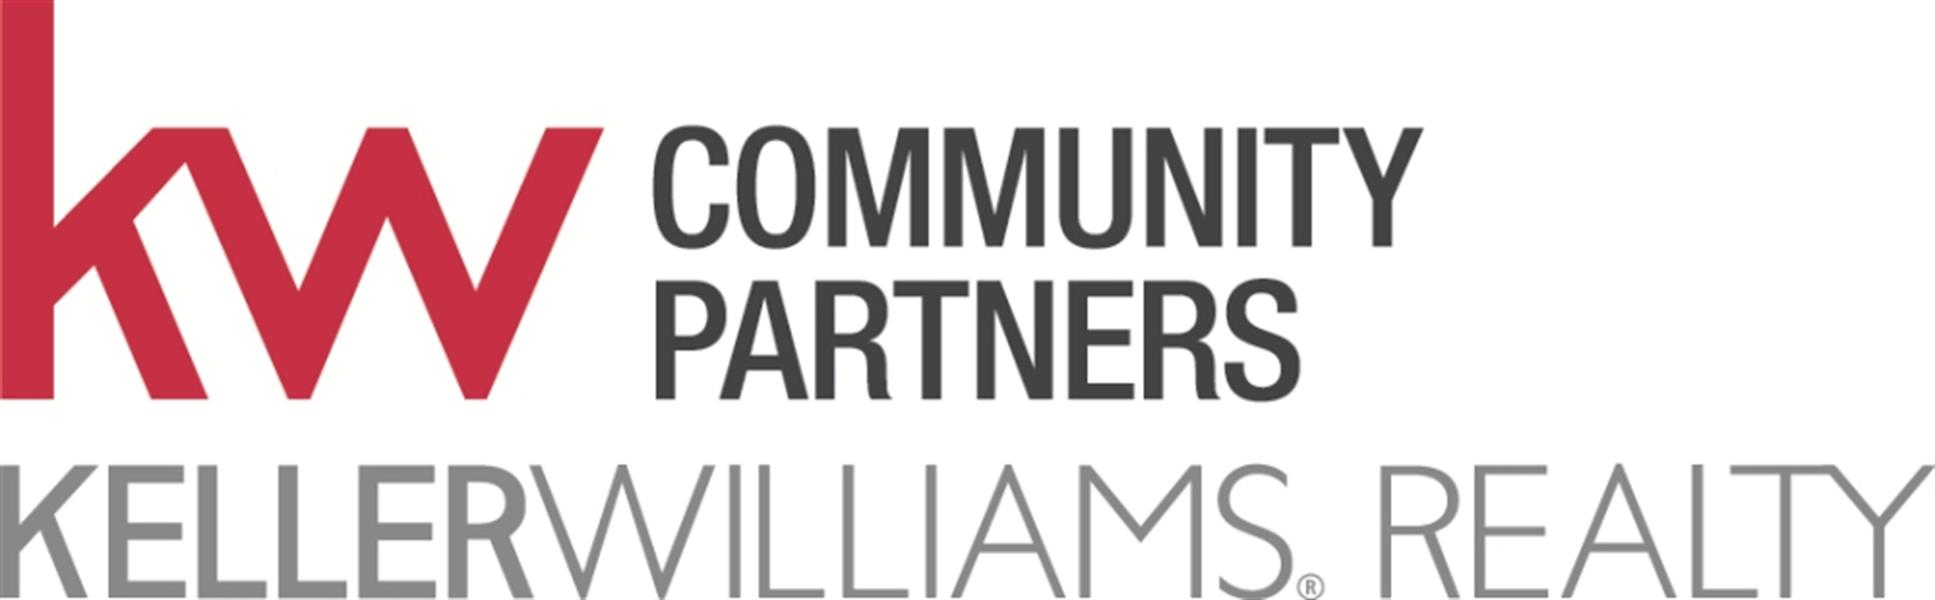 Mike Garcia Team-Keller Williams Community Partners